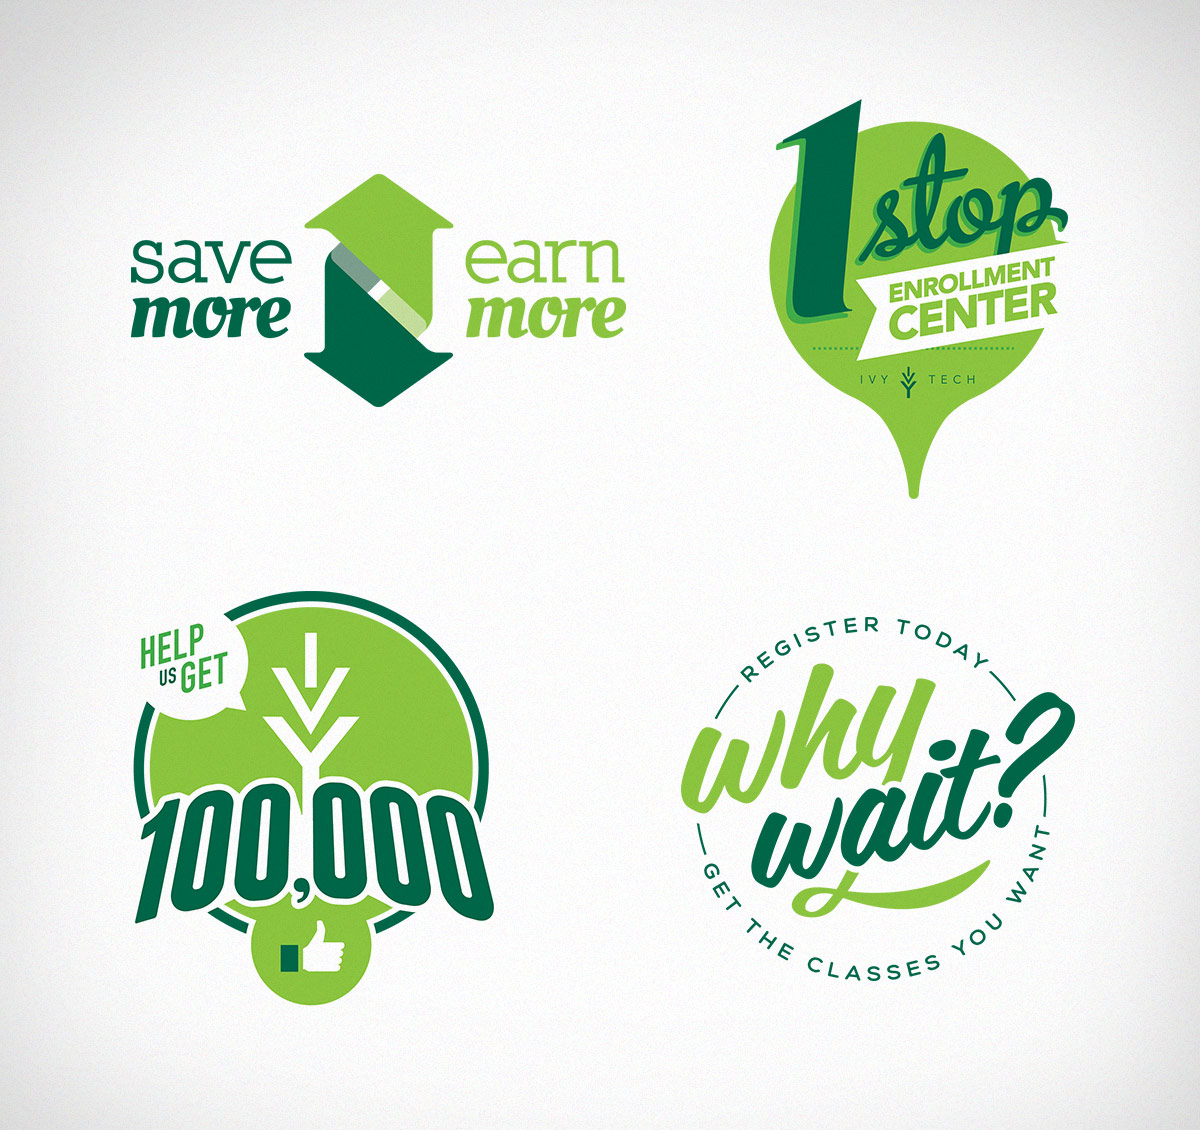 Ivy Tech campaign wordmarks